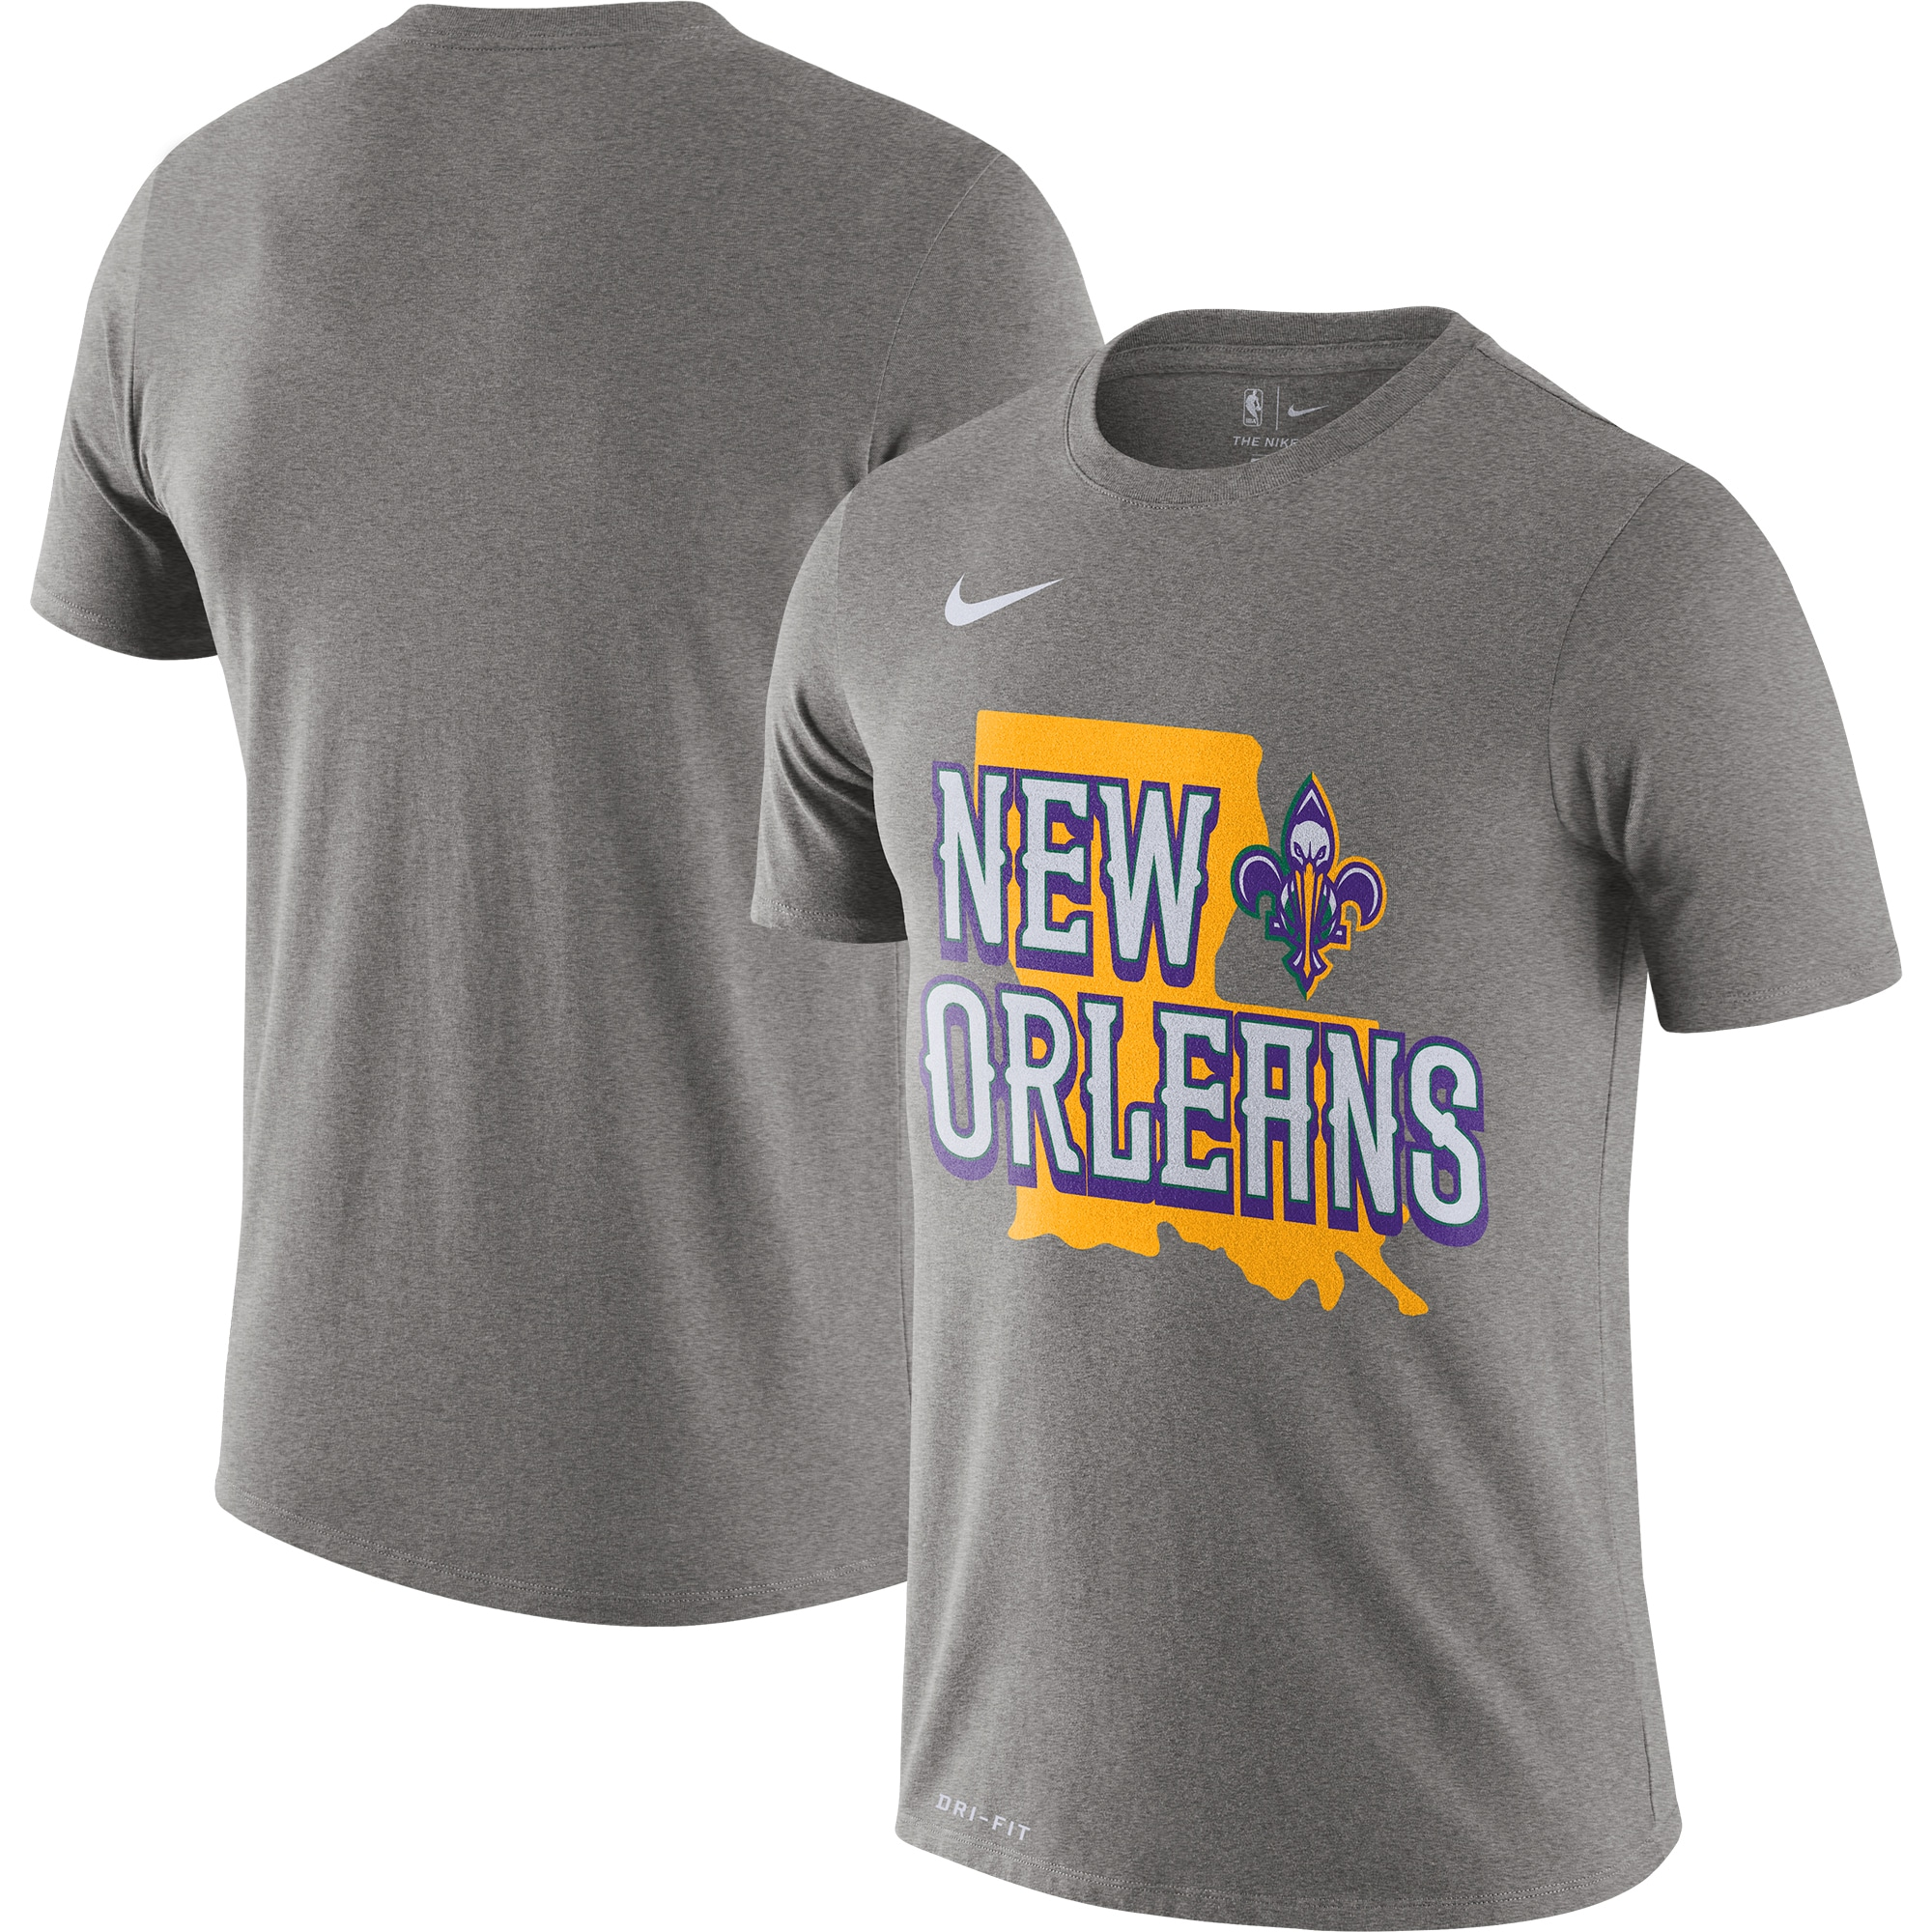 New Orleans Pelicans Nike 2019/20 City Edition Hometown Performance T-Shirt - Heather Gray